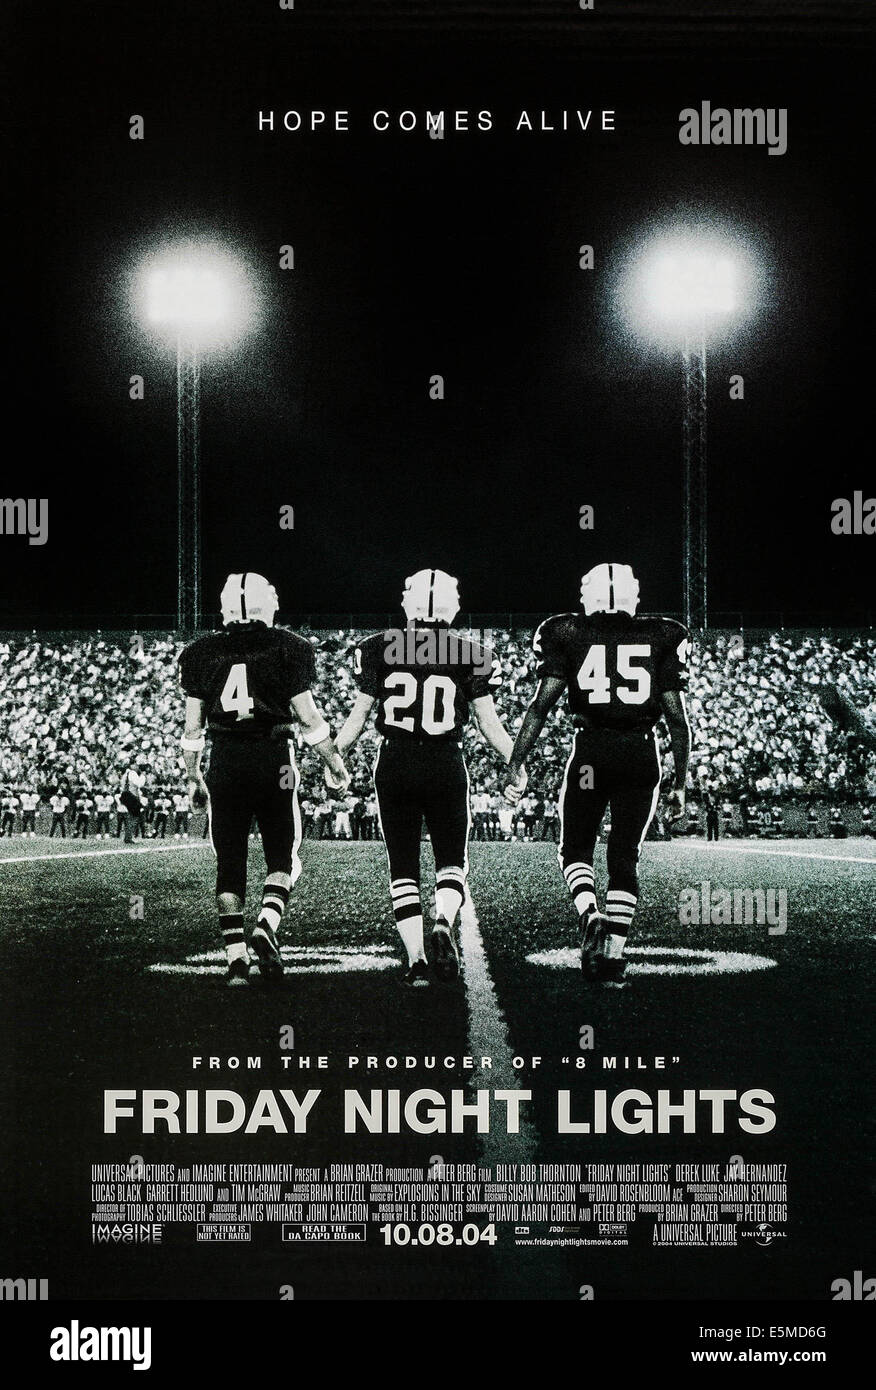 FRIDAY NIGHT LIGHTS, US advance poster art, 2004. ©Universal/courtesy Everett Collection - Stock Image